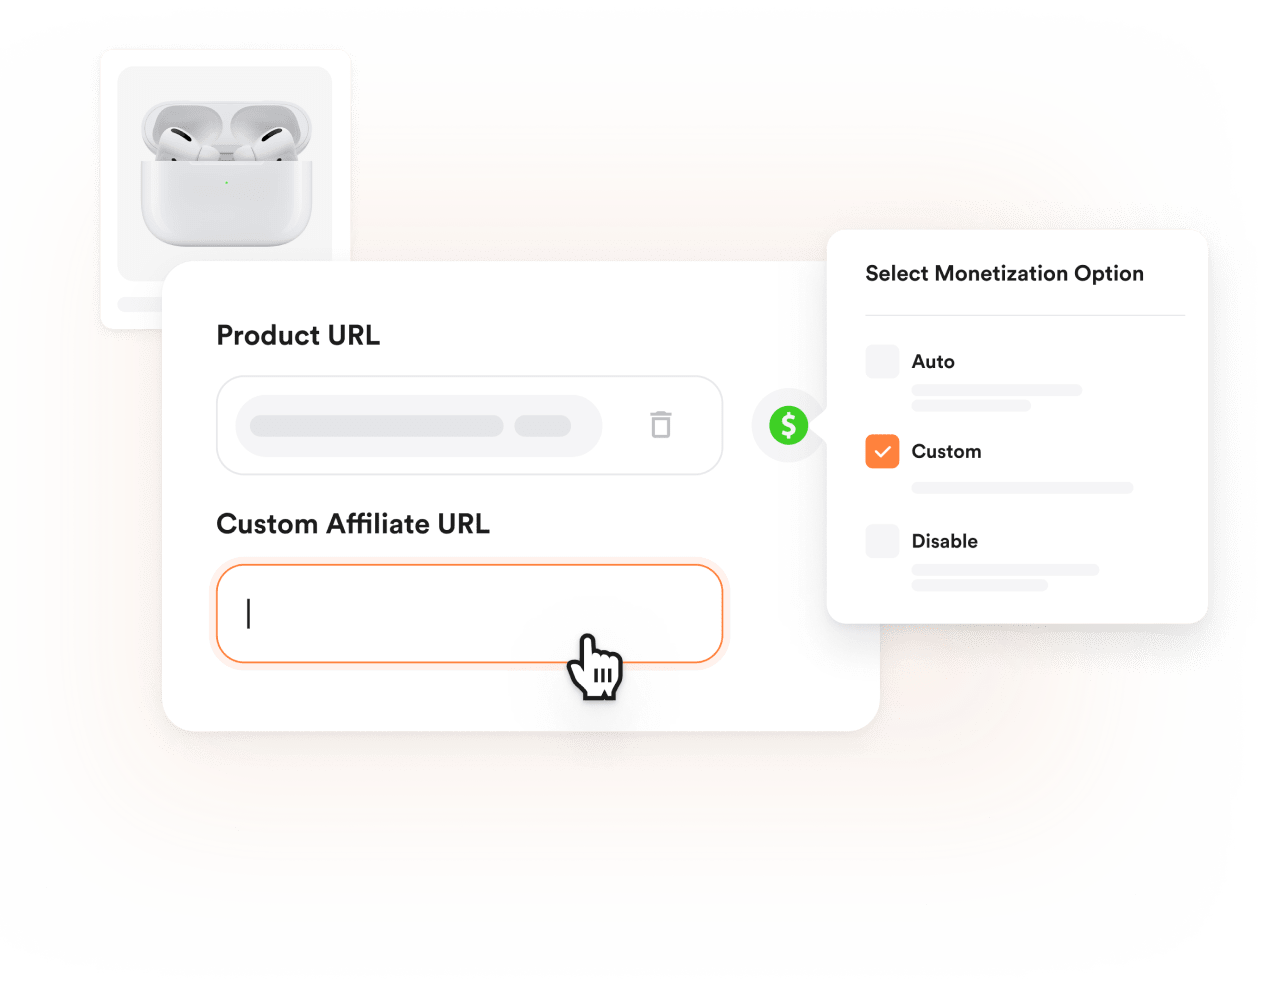 Image showing the process of adding the affiliate url